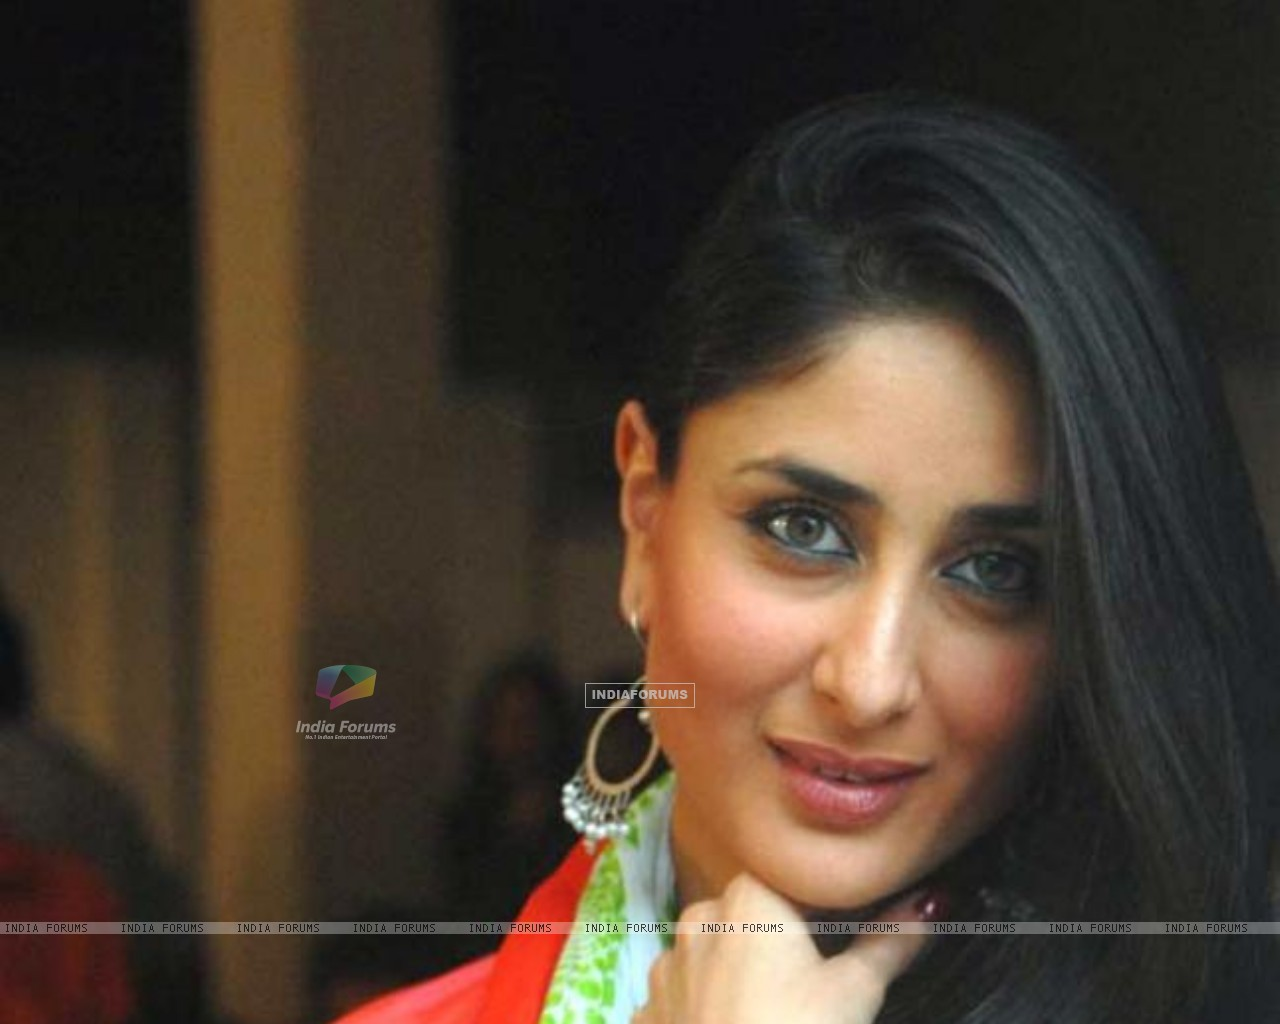 Kareena Kapoor The Movie Bodyguard Size